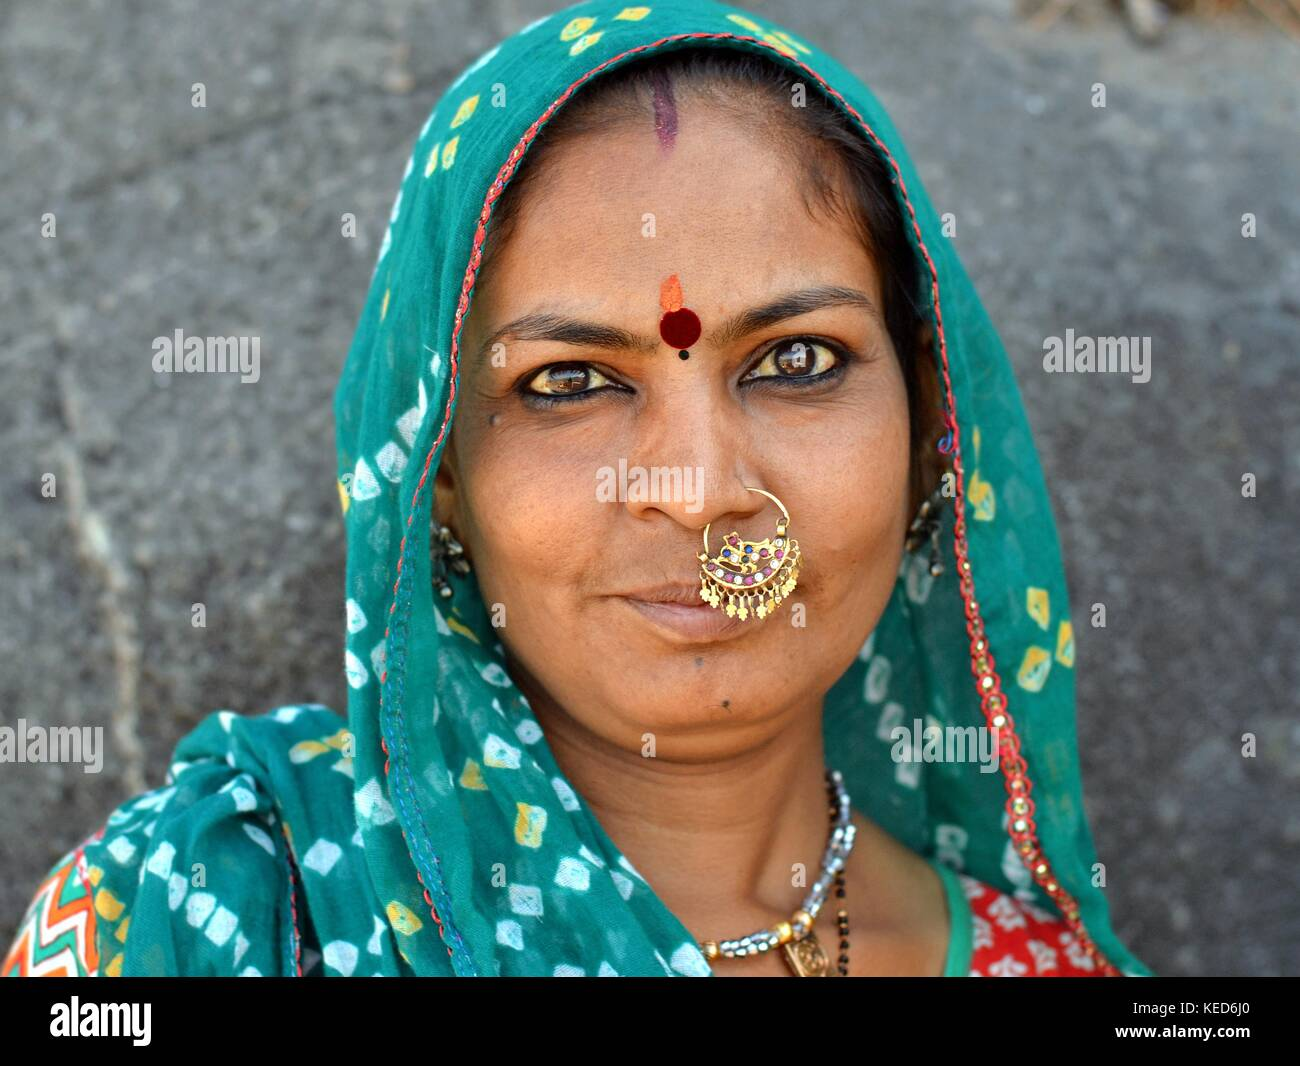 Head shot of a middle-aged Gujarati woman with green dupatta and precious traditional Indian nose jewellery - Stock Image